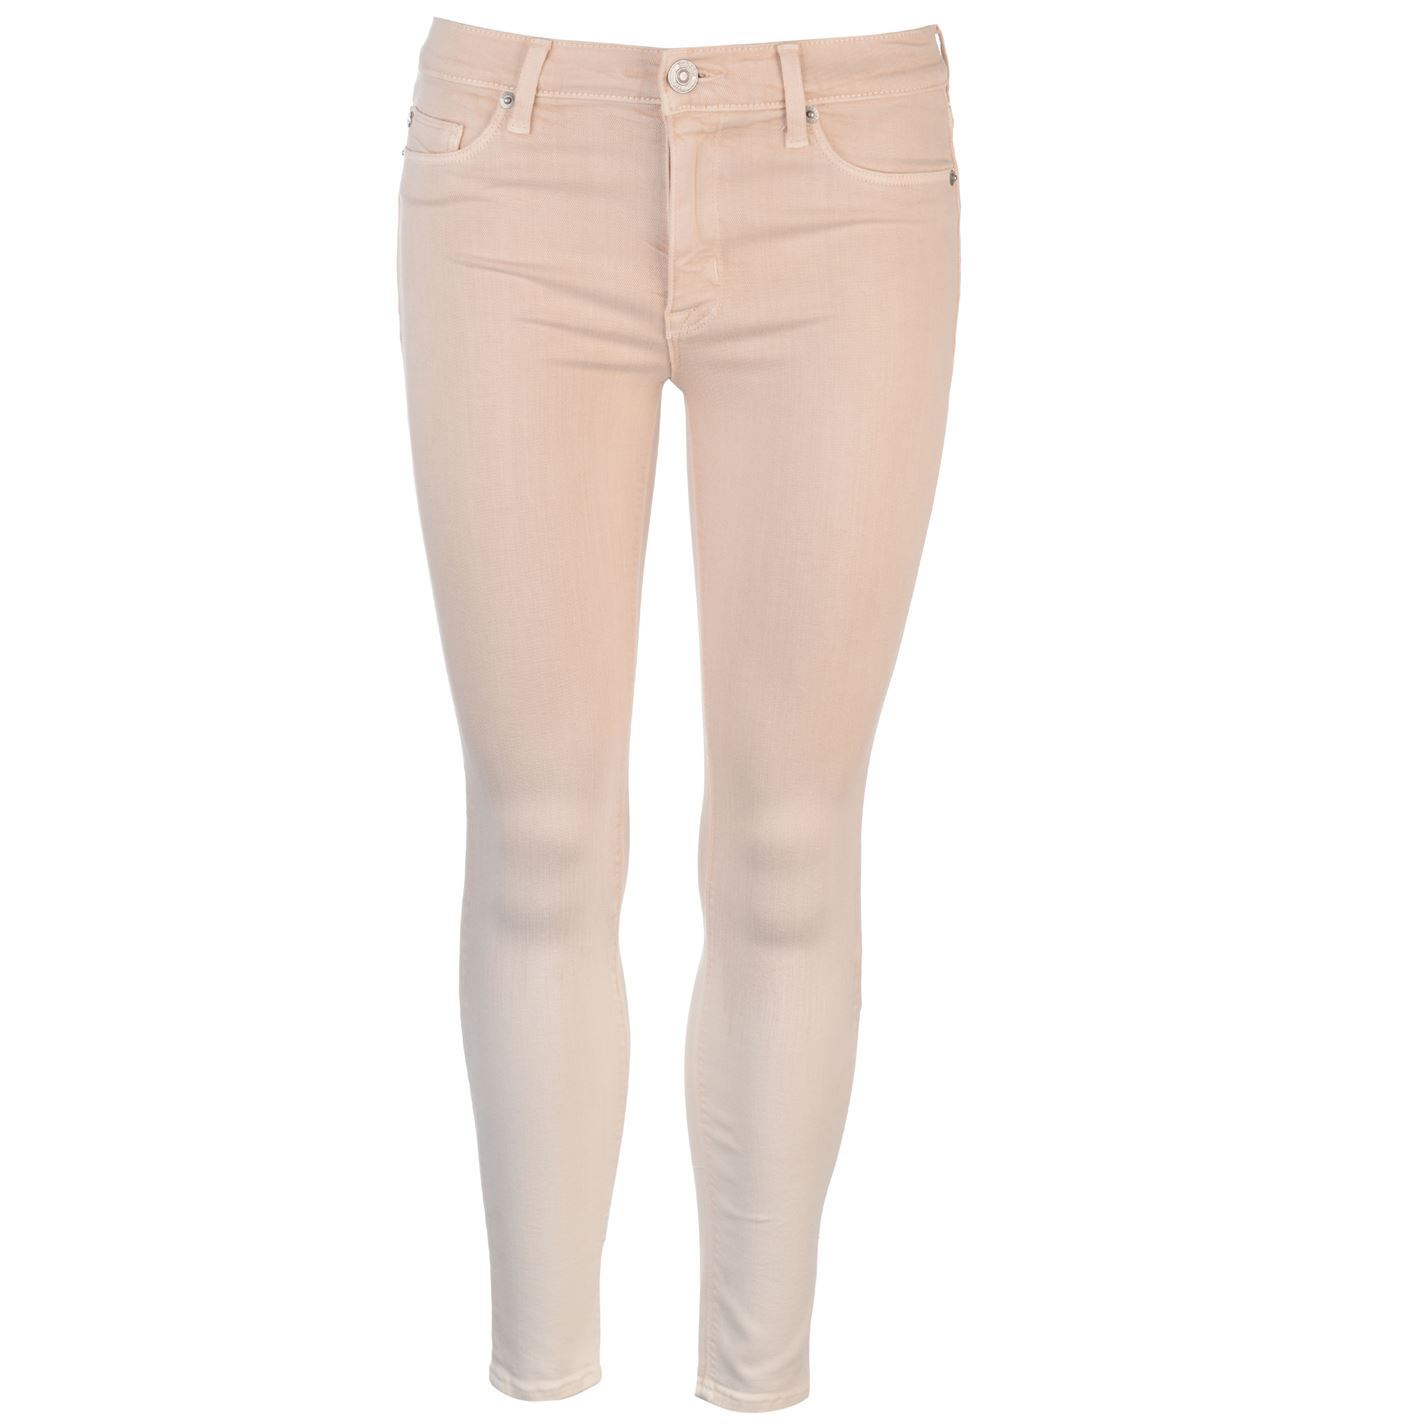 Hudson-Jeans-Nico-Ankle-Ladies-Skinny-Pants-Trousers-Bottoms